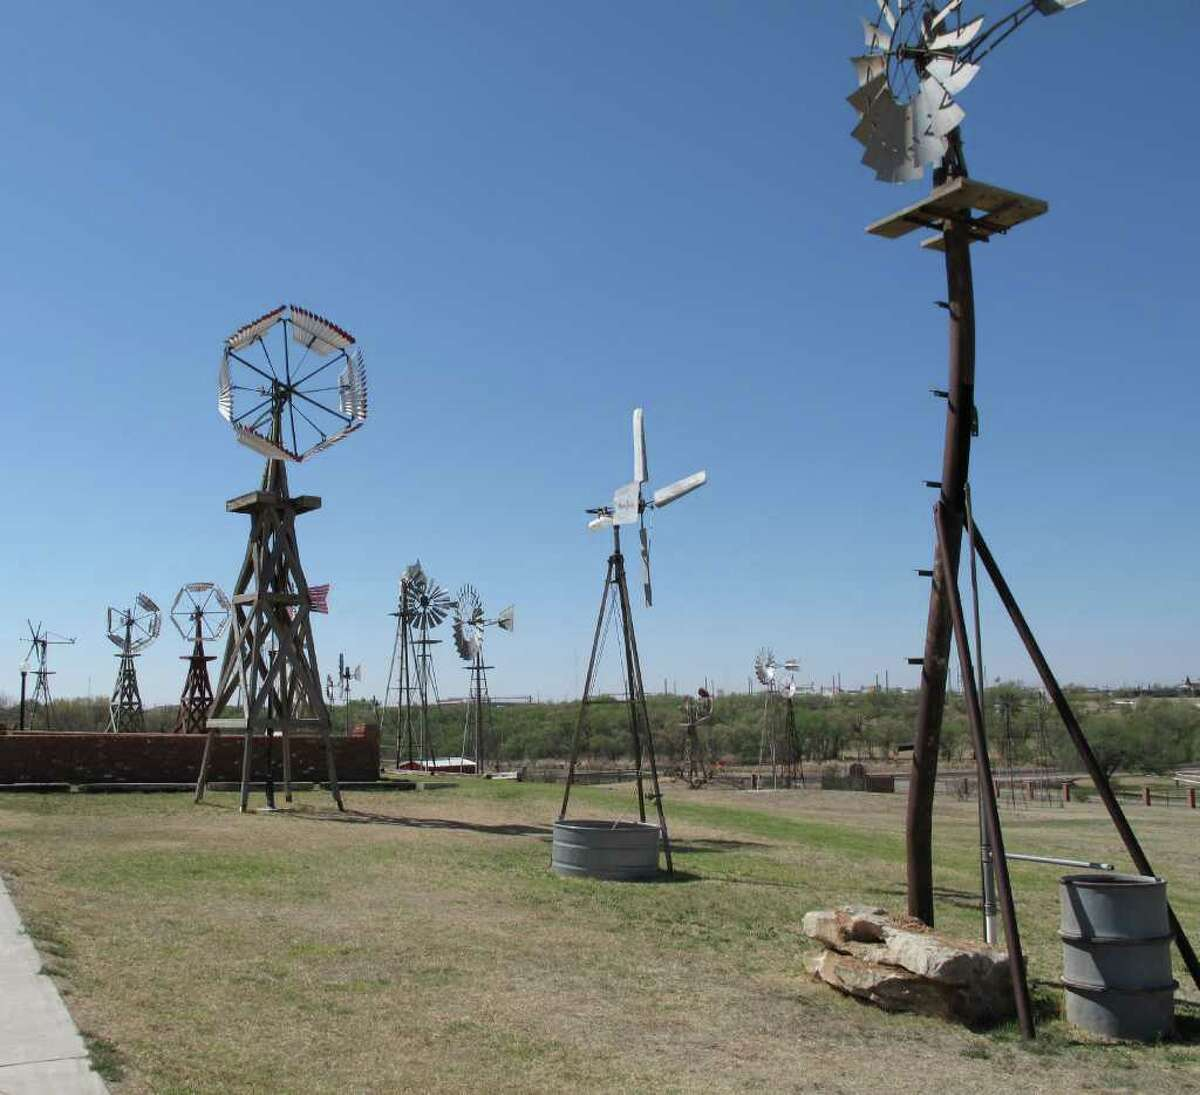 40. Lubbock In this photo, American Wind Power Center in Lubbock shows a variety of wilndmill styles.